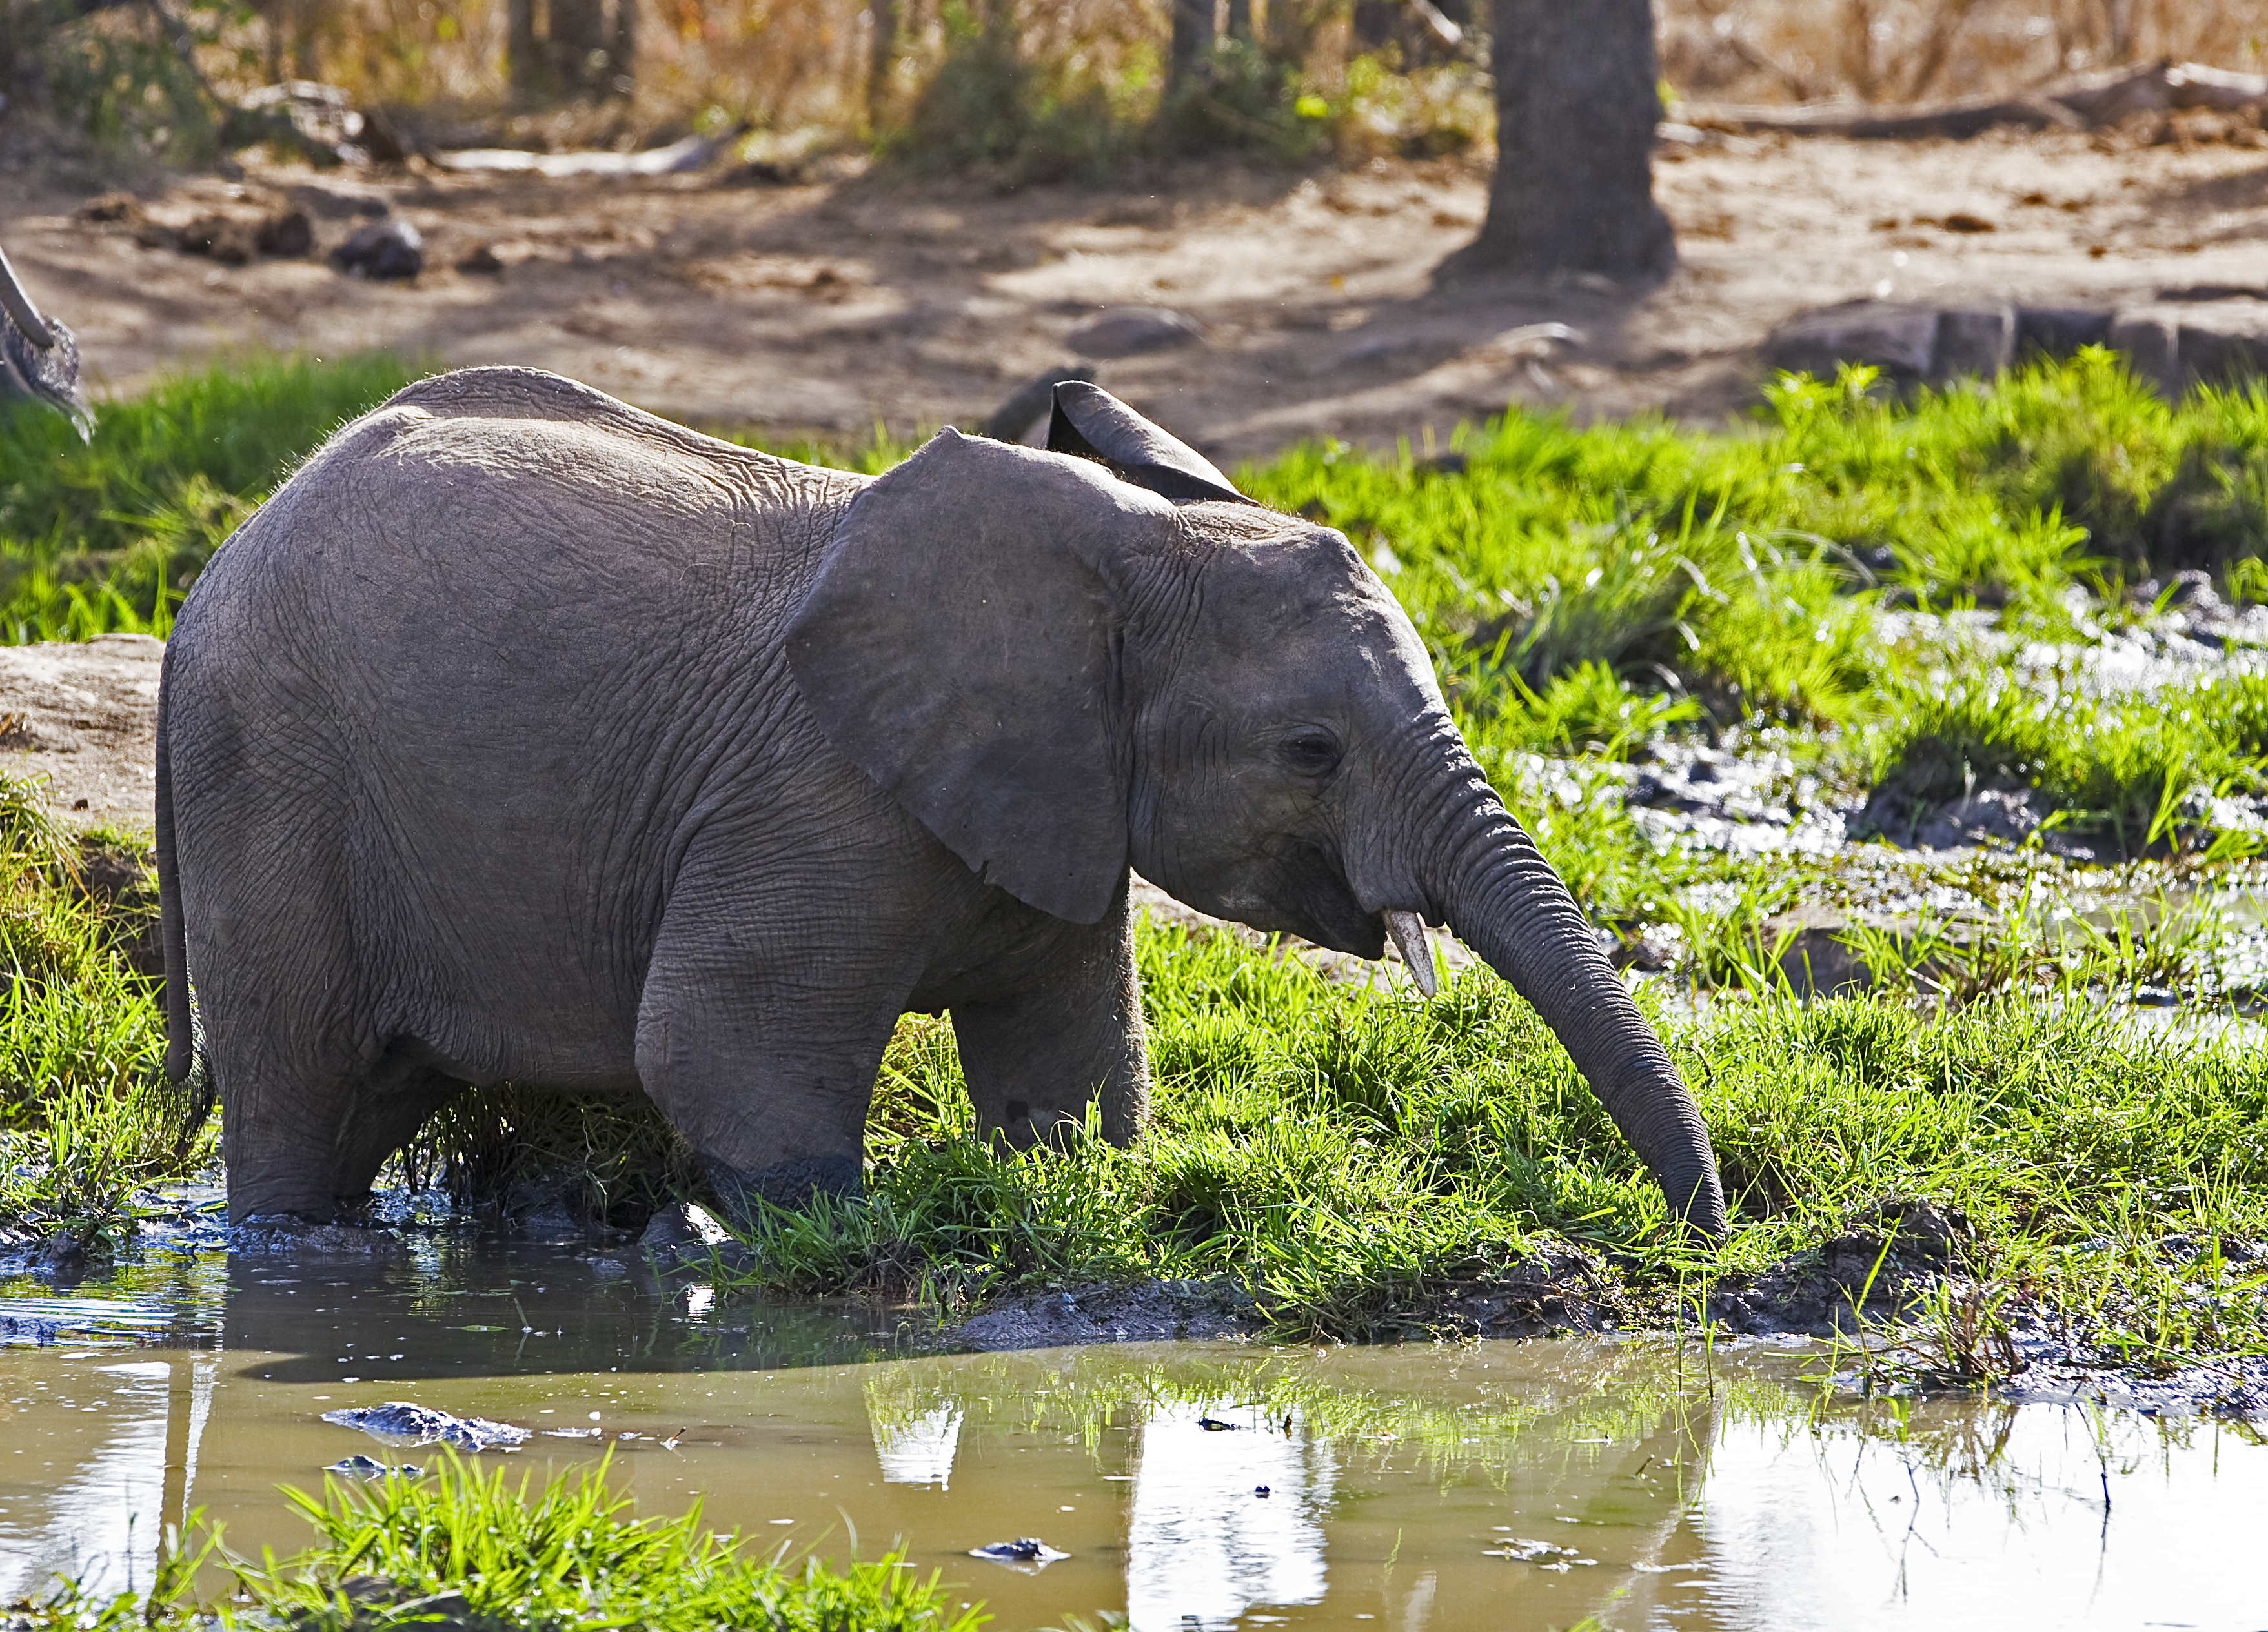 Elephant drinking from a watering hole, Swaziland